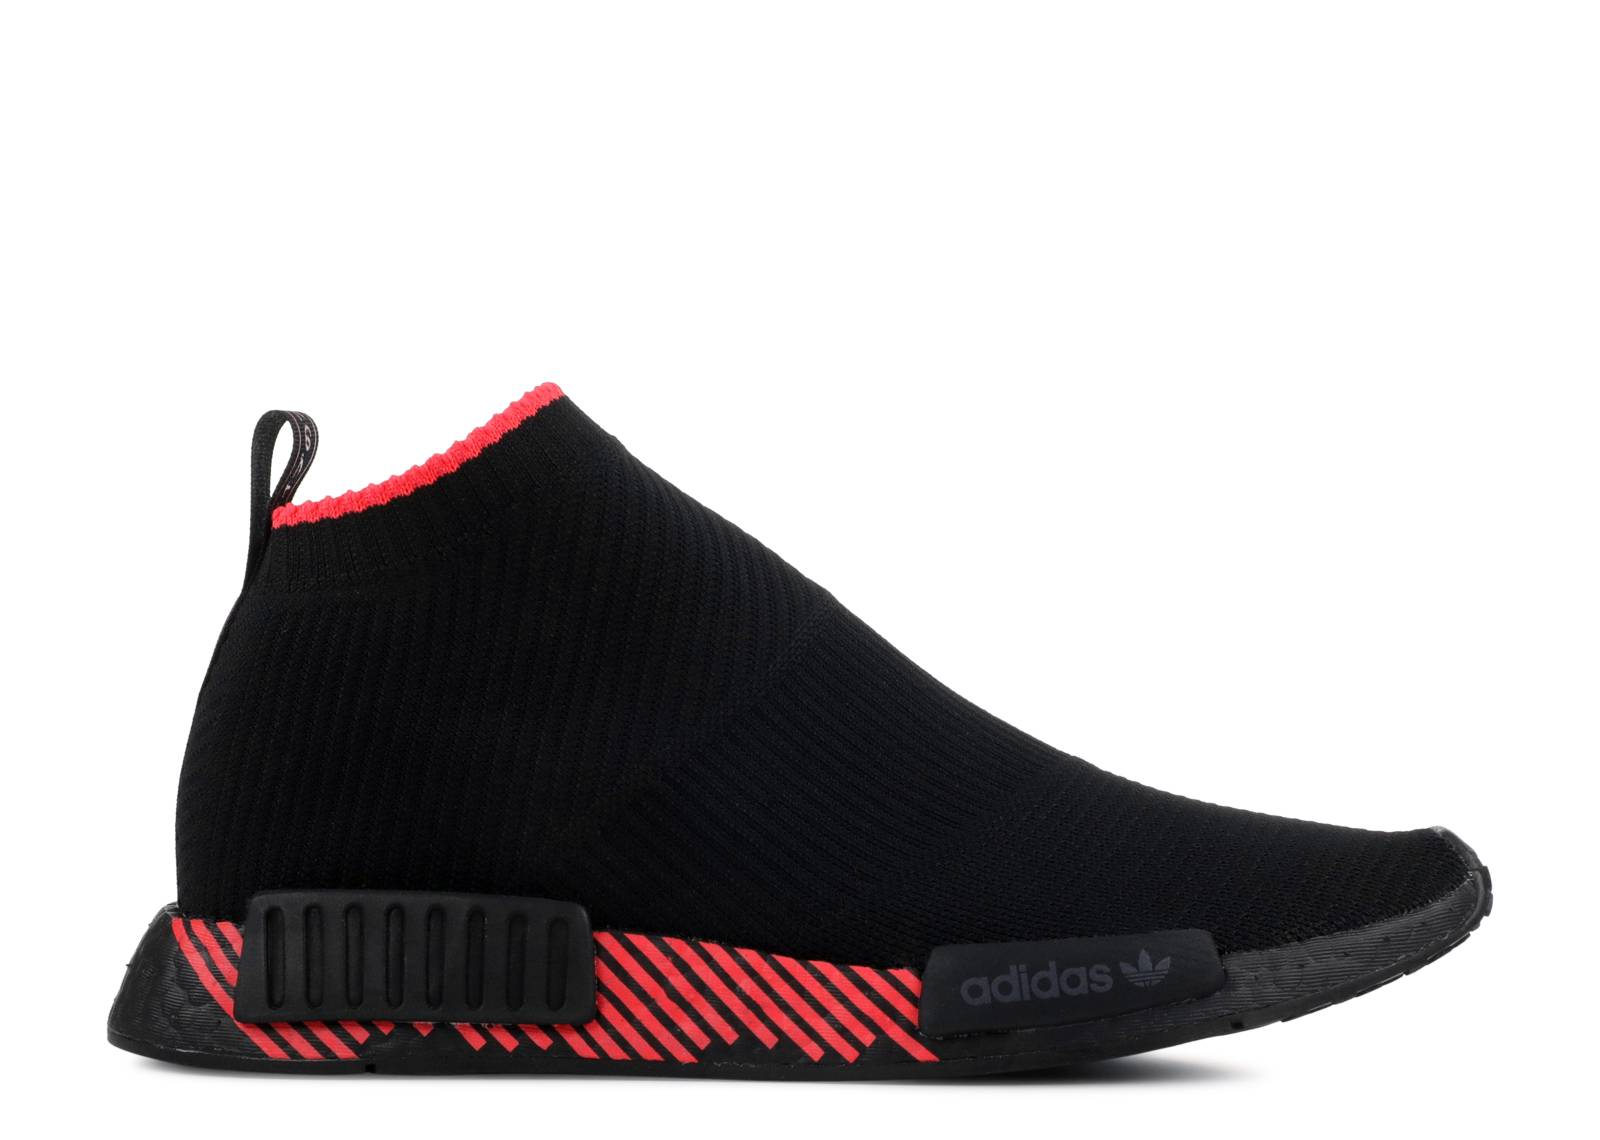 "NMD_CS1 'Shock Red' ""Shock Red"""